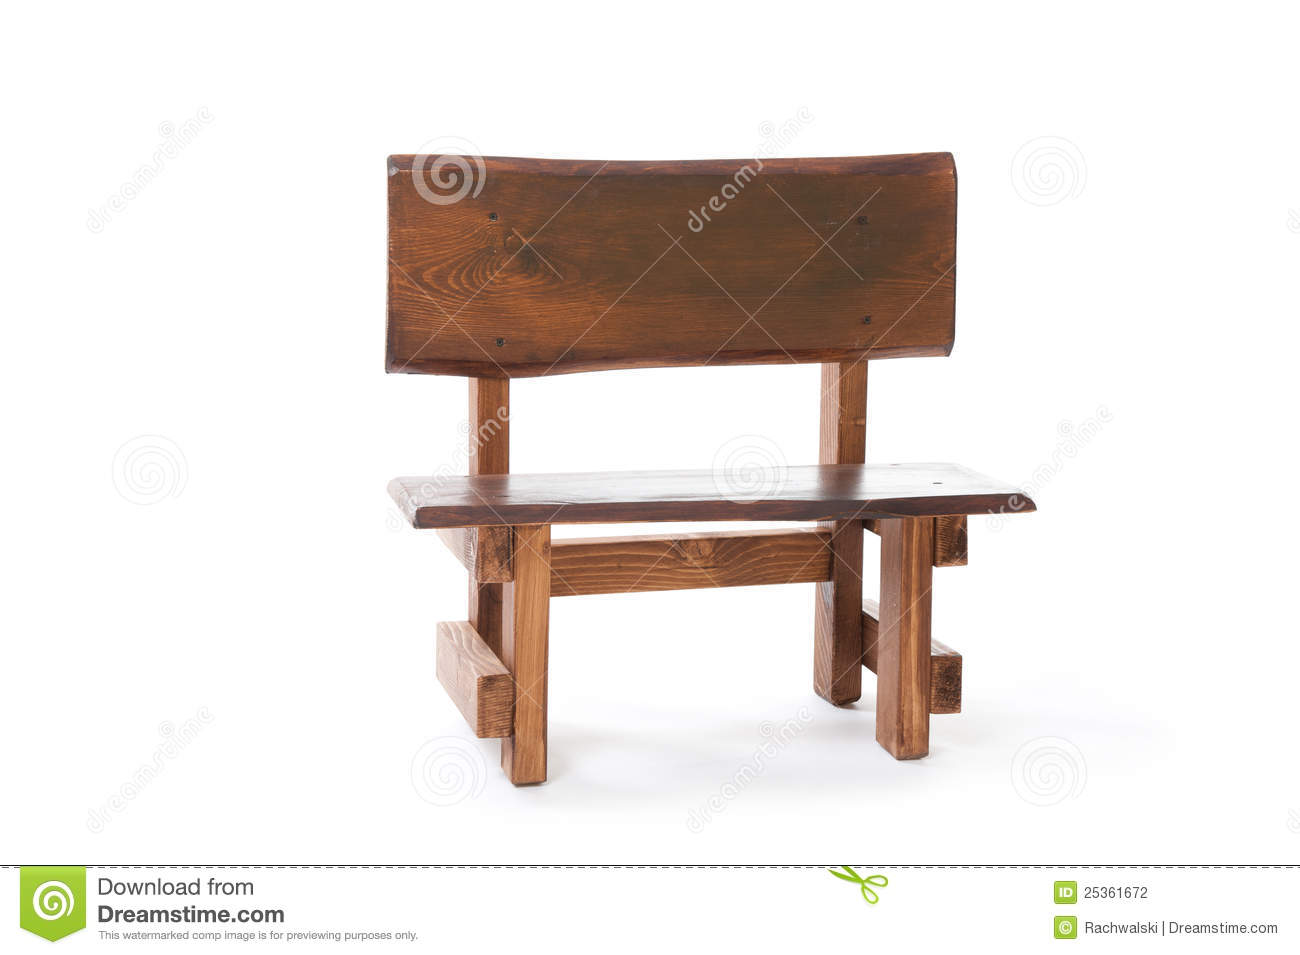 A Small Wooden Bench On A White Background Stock